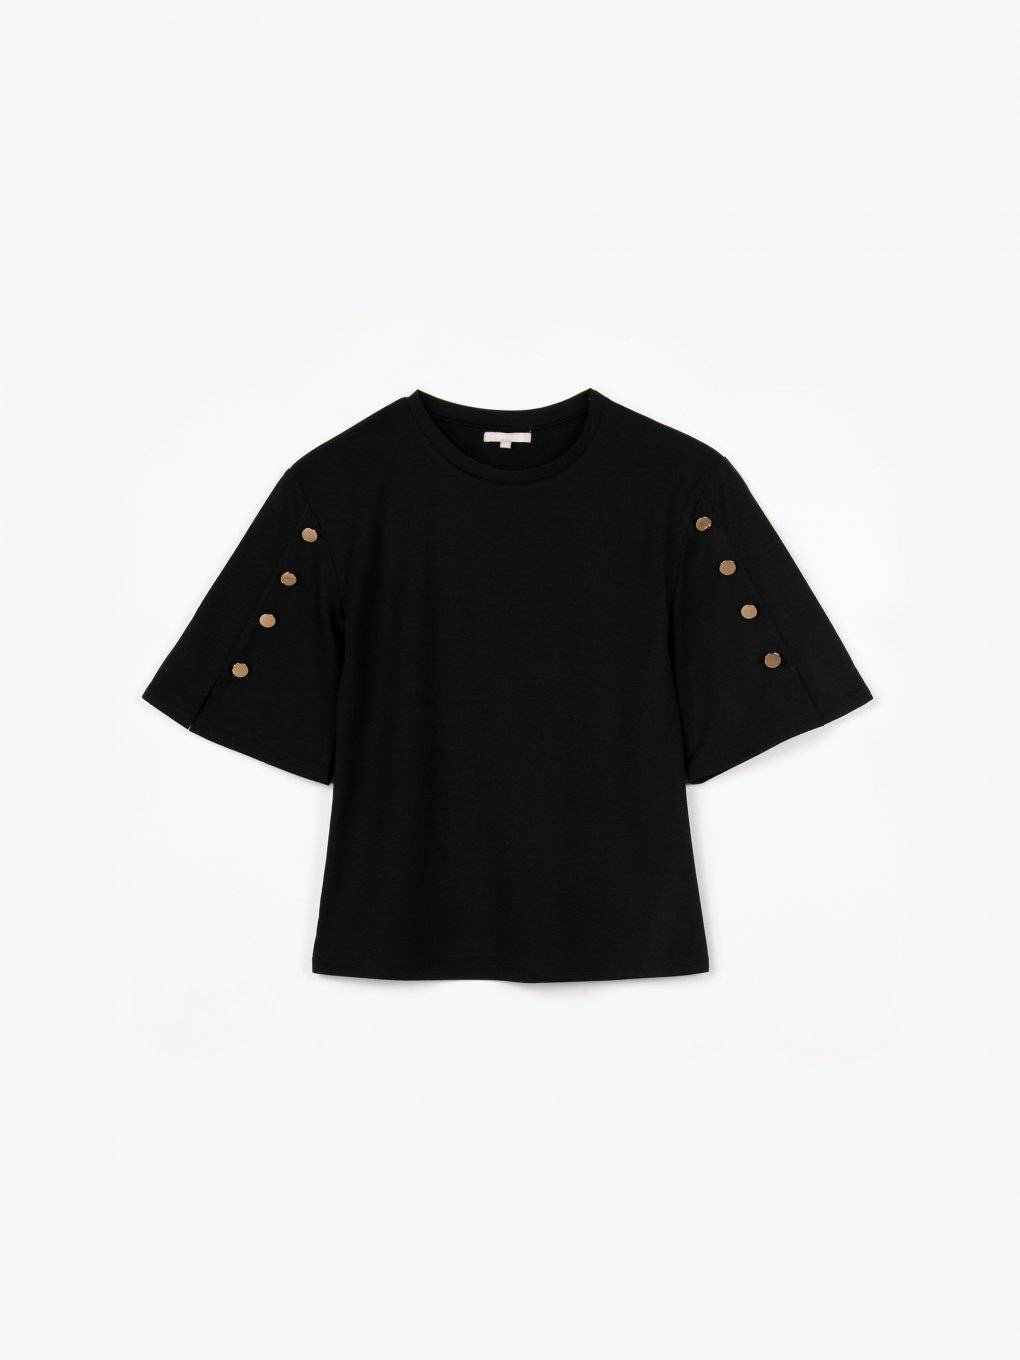 T-shirt with embellished sleeves